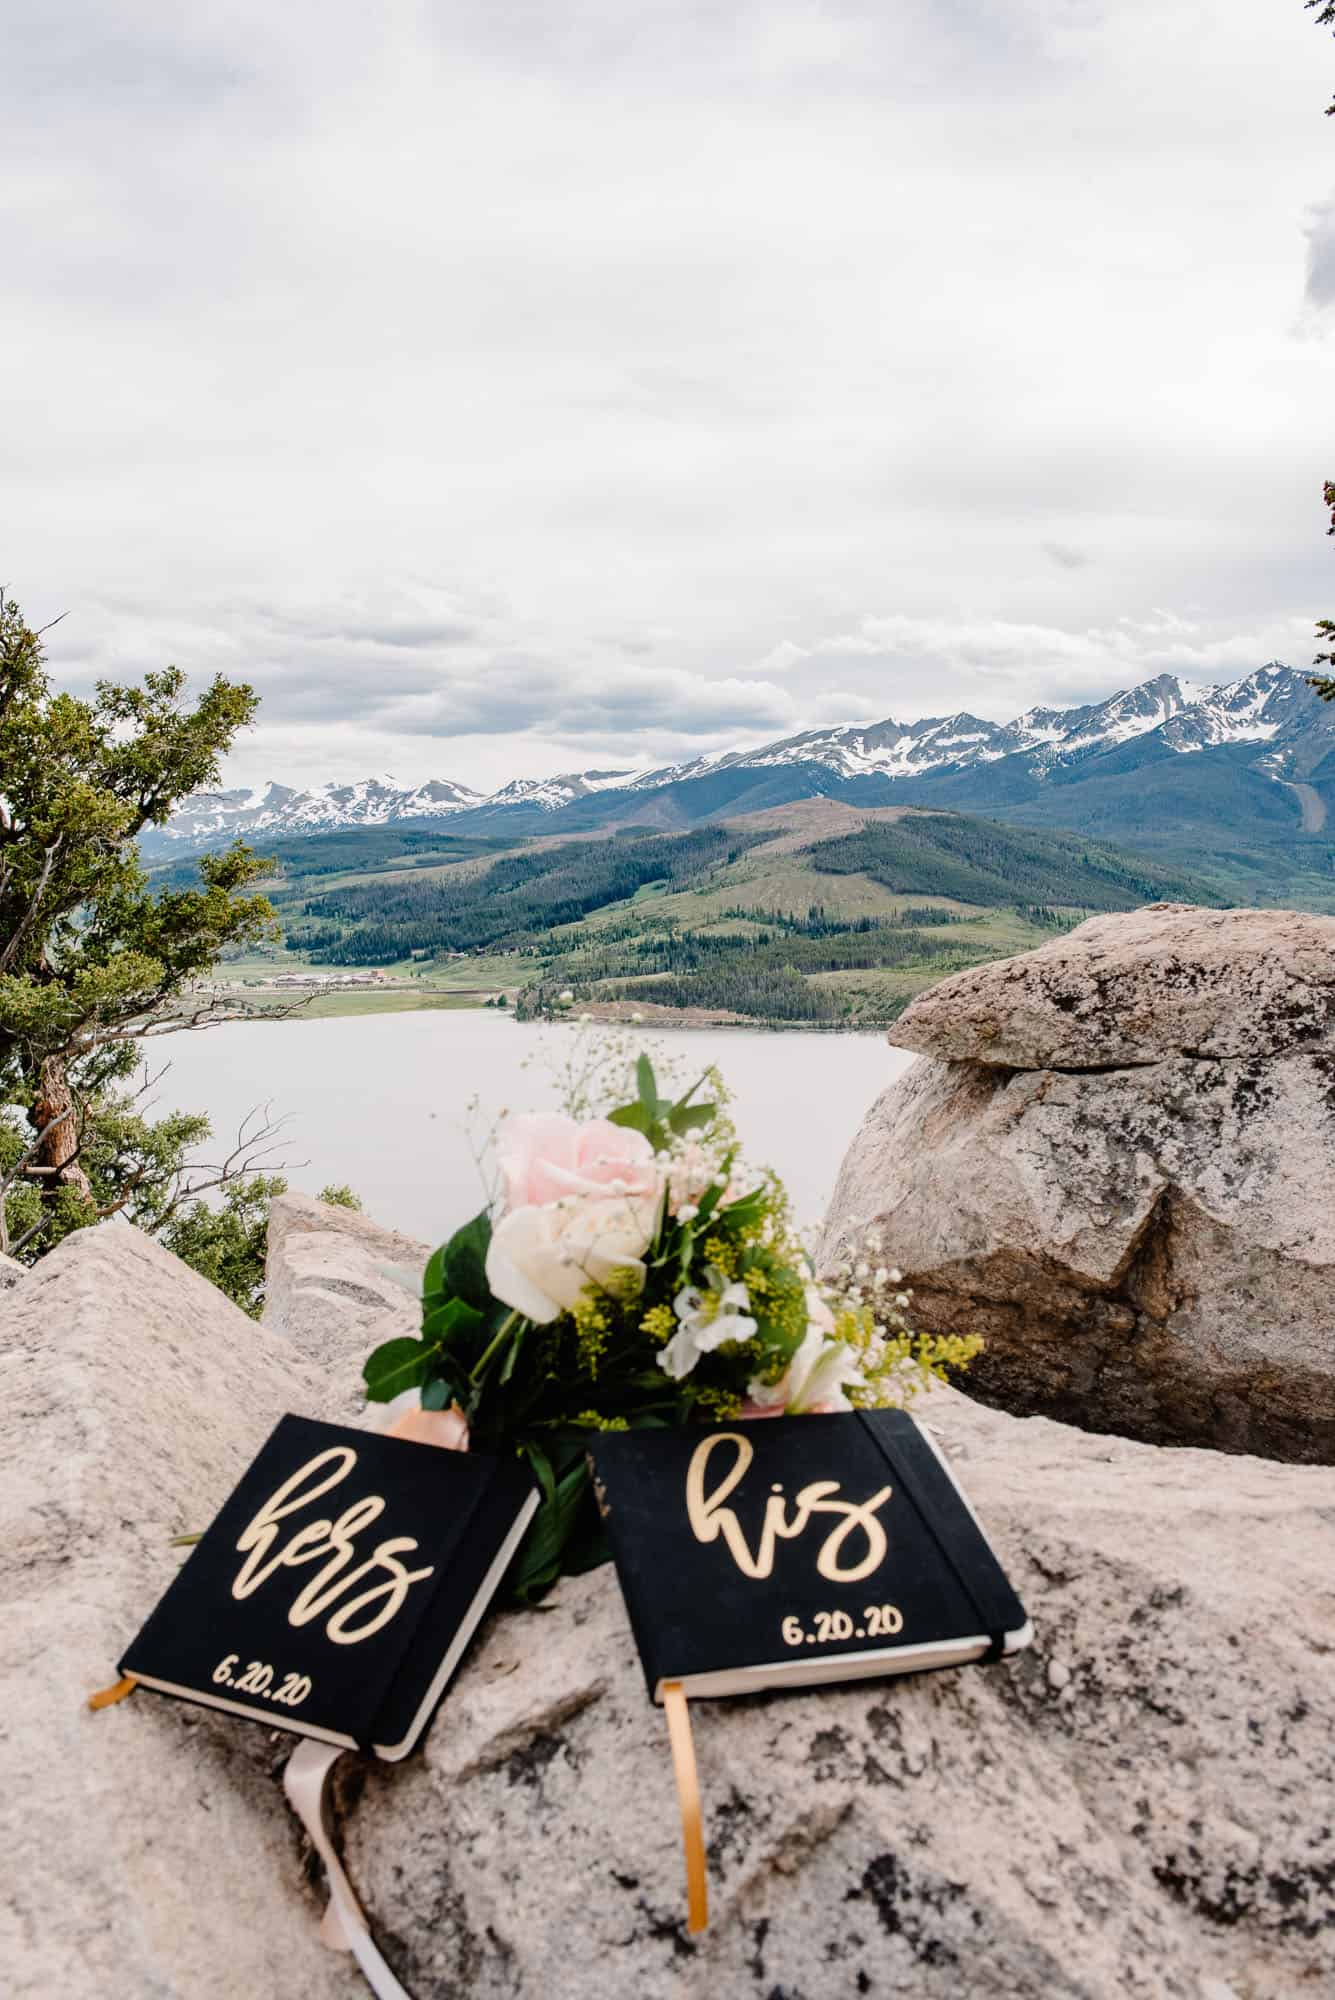 couples vow books on a rock over looking the mountains